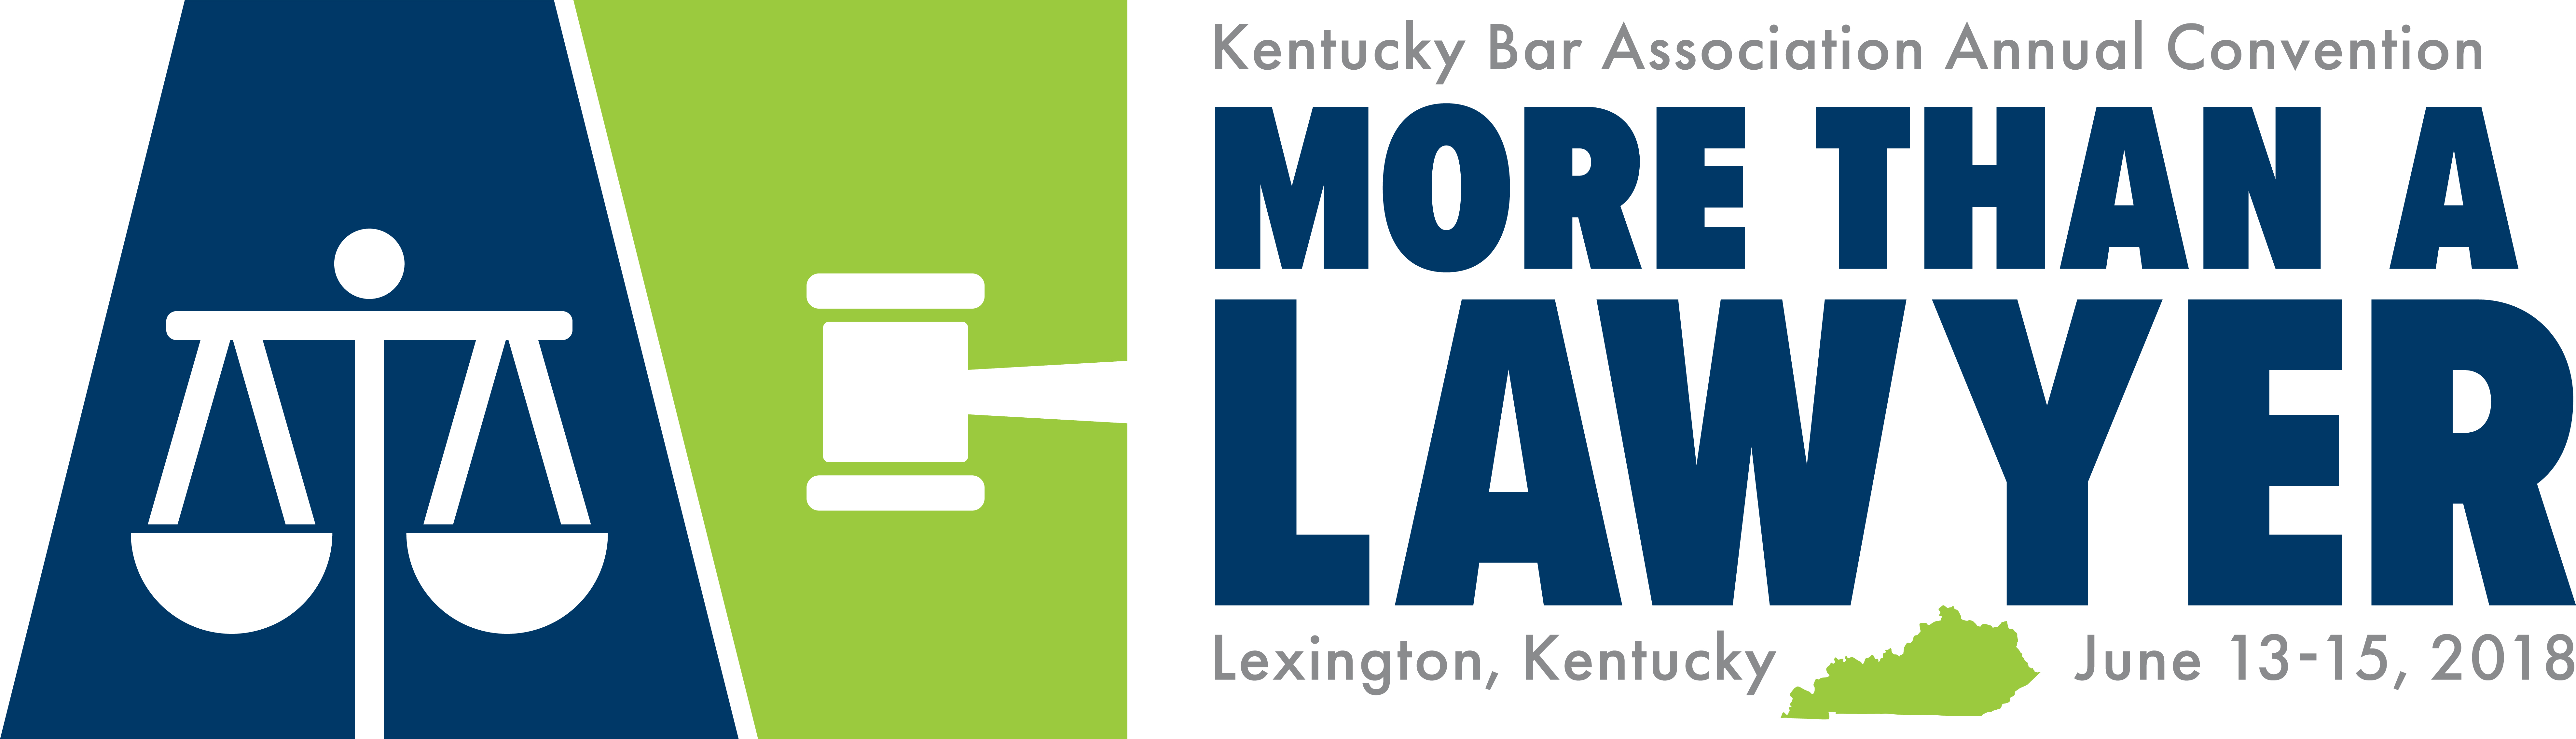 2019 Annual Conventions Exhibitor Schedule And Information Kentucky Bar Association